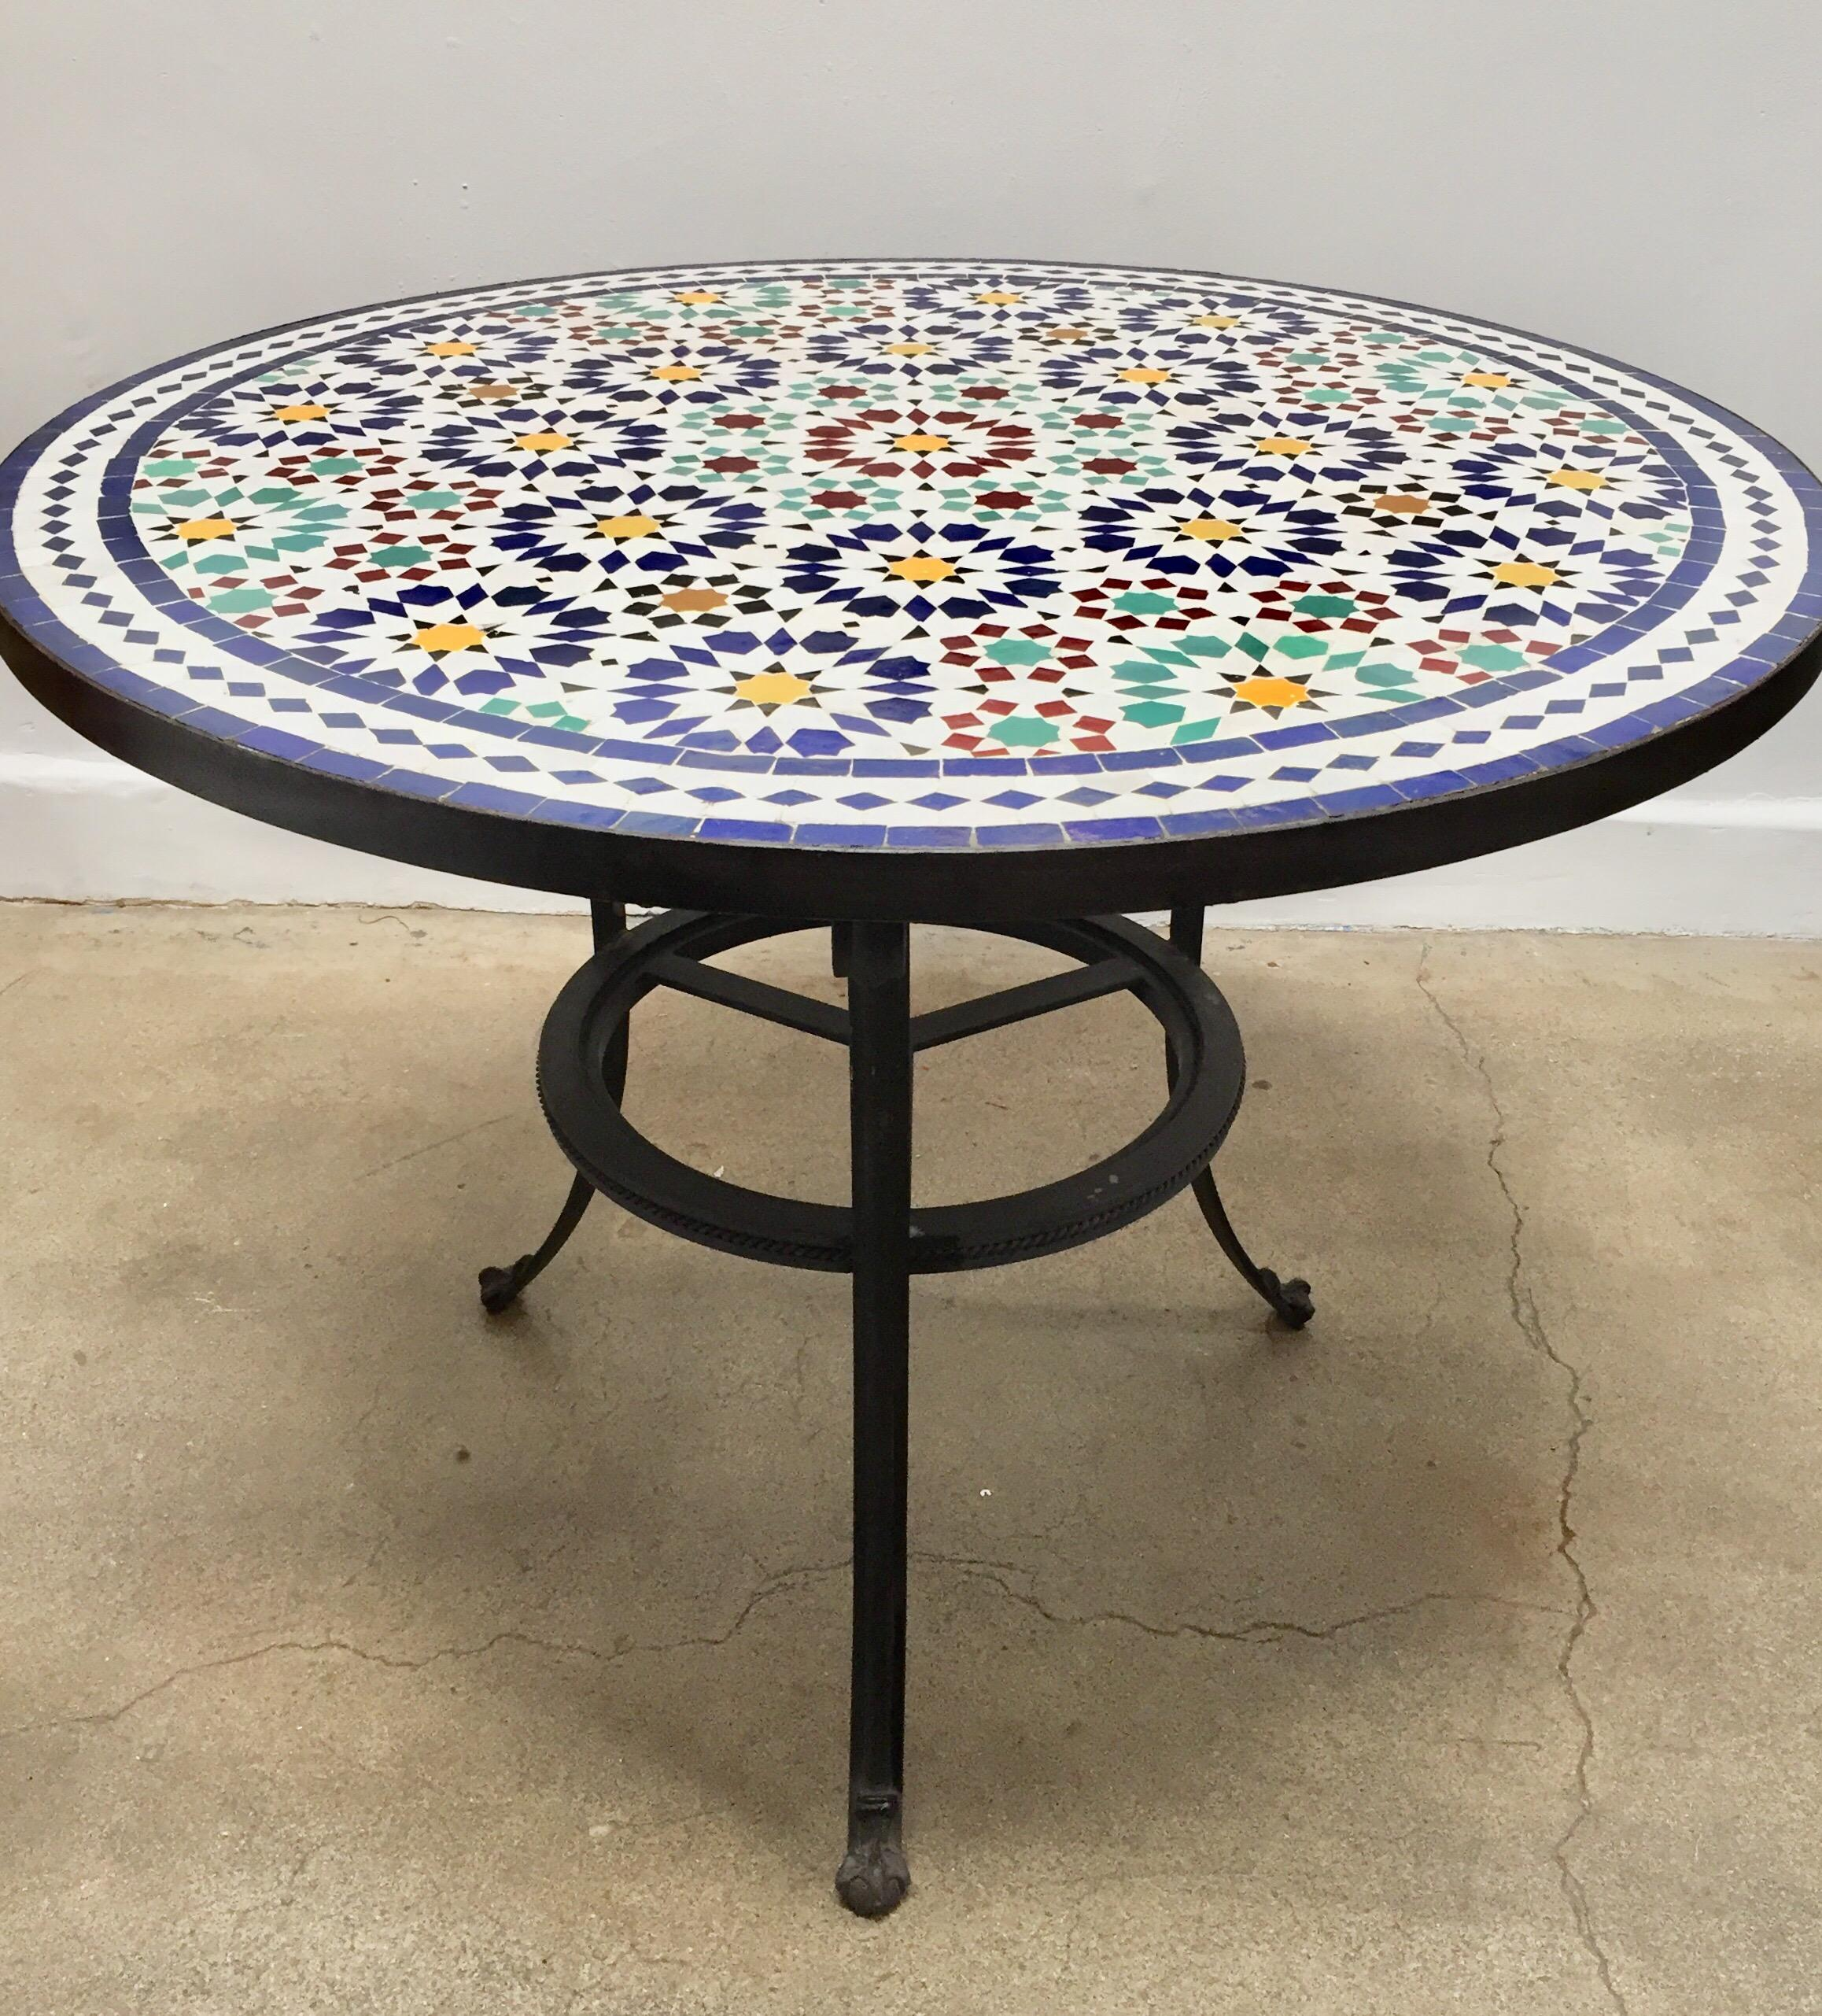 Great Moroccan Mosaic Tile Table, Delicately Handcrafted In Fez With  Traditional Islamic Moorish Geometric Design